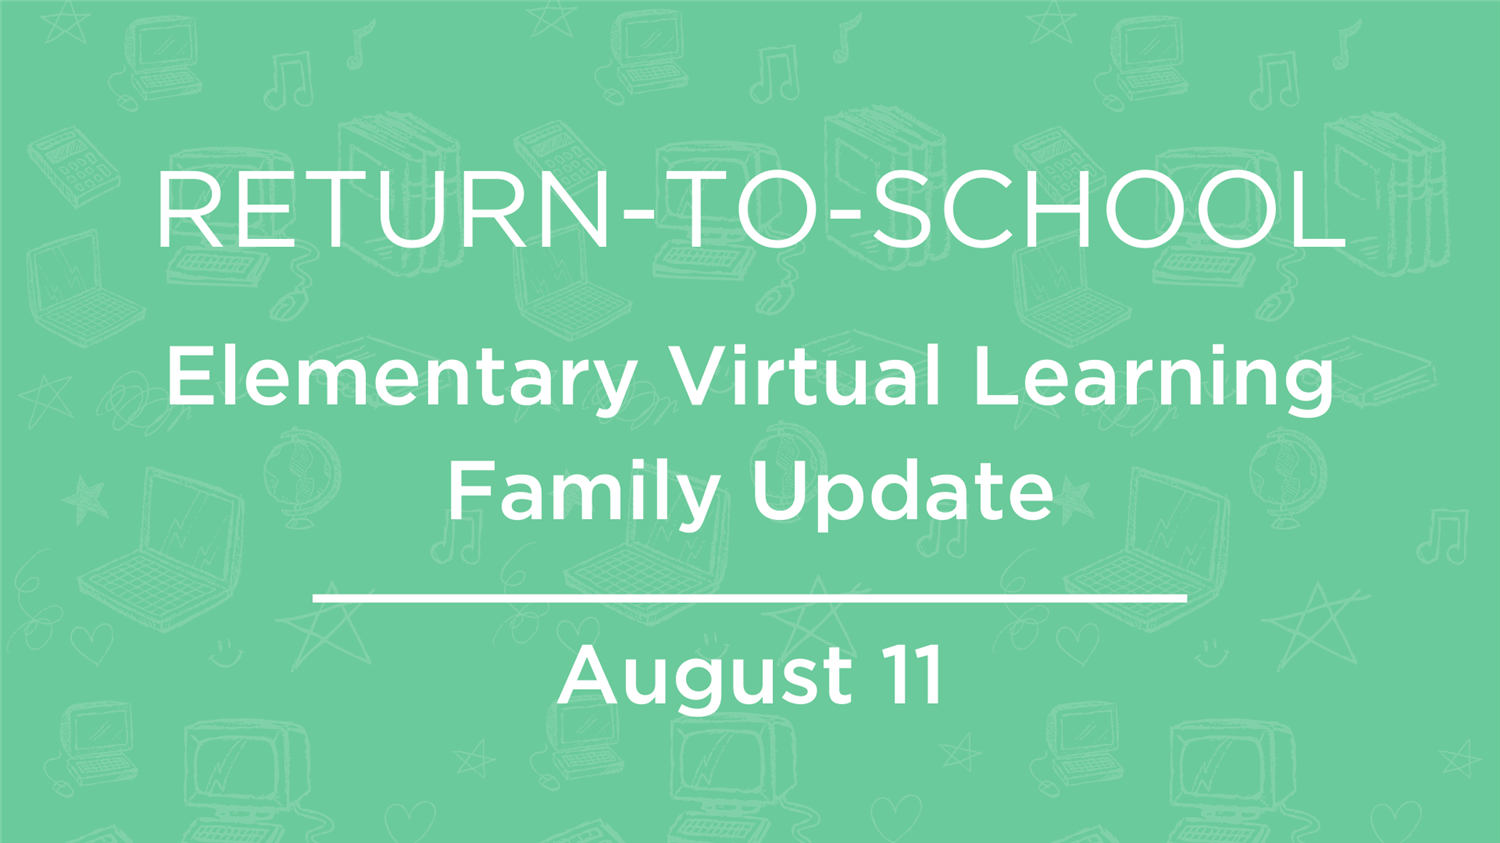 Elementary Virtual Learning Family Update